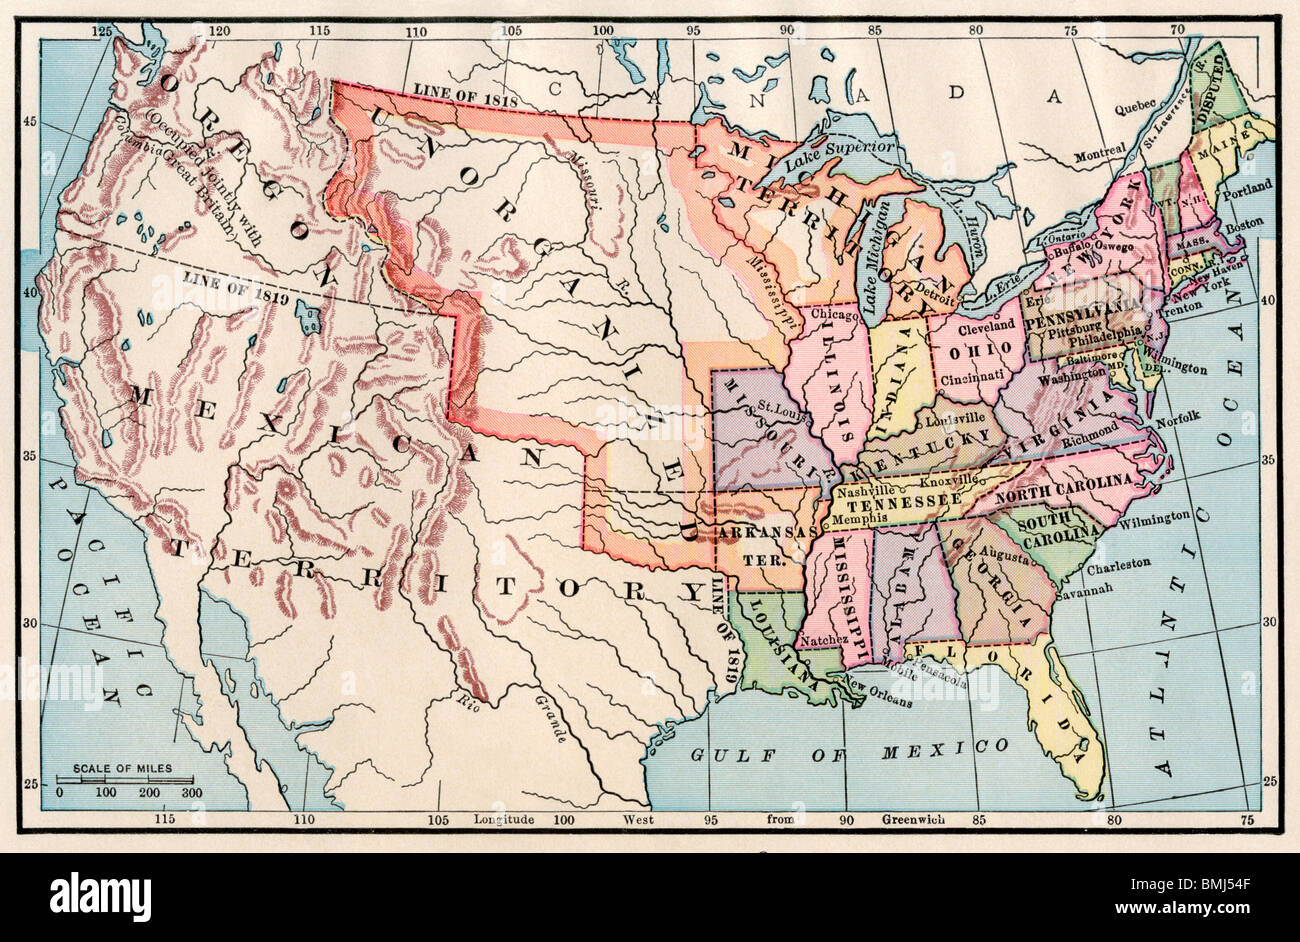 Map Of The United States In Stock Photo Royalty Free Image - 1830 us map